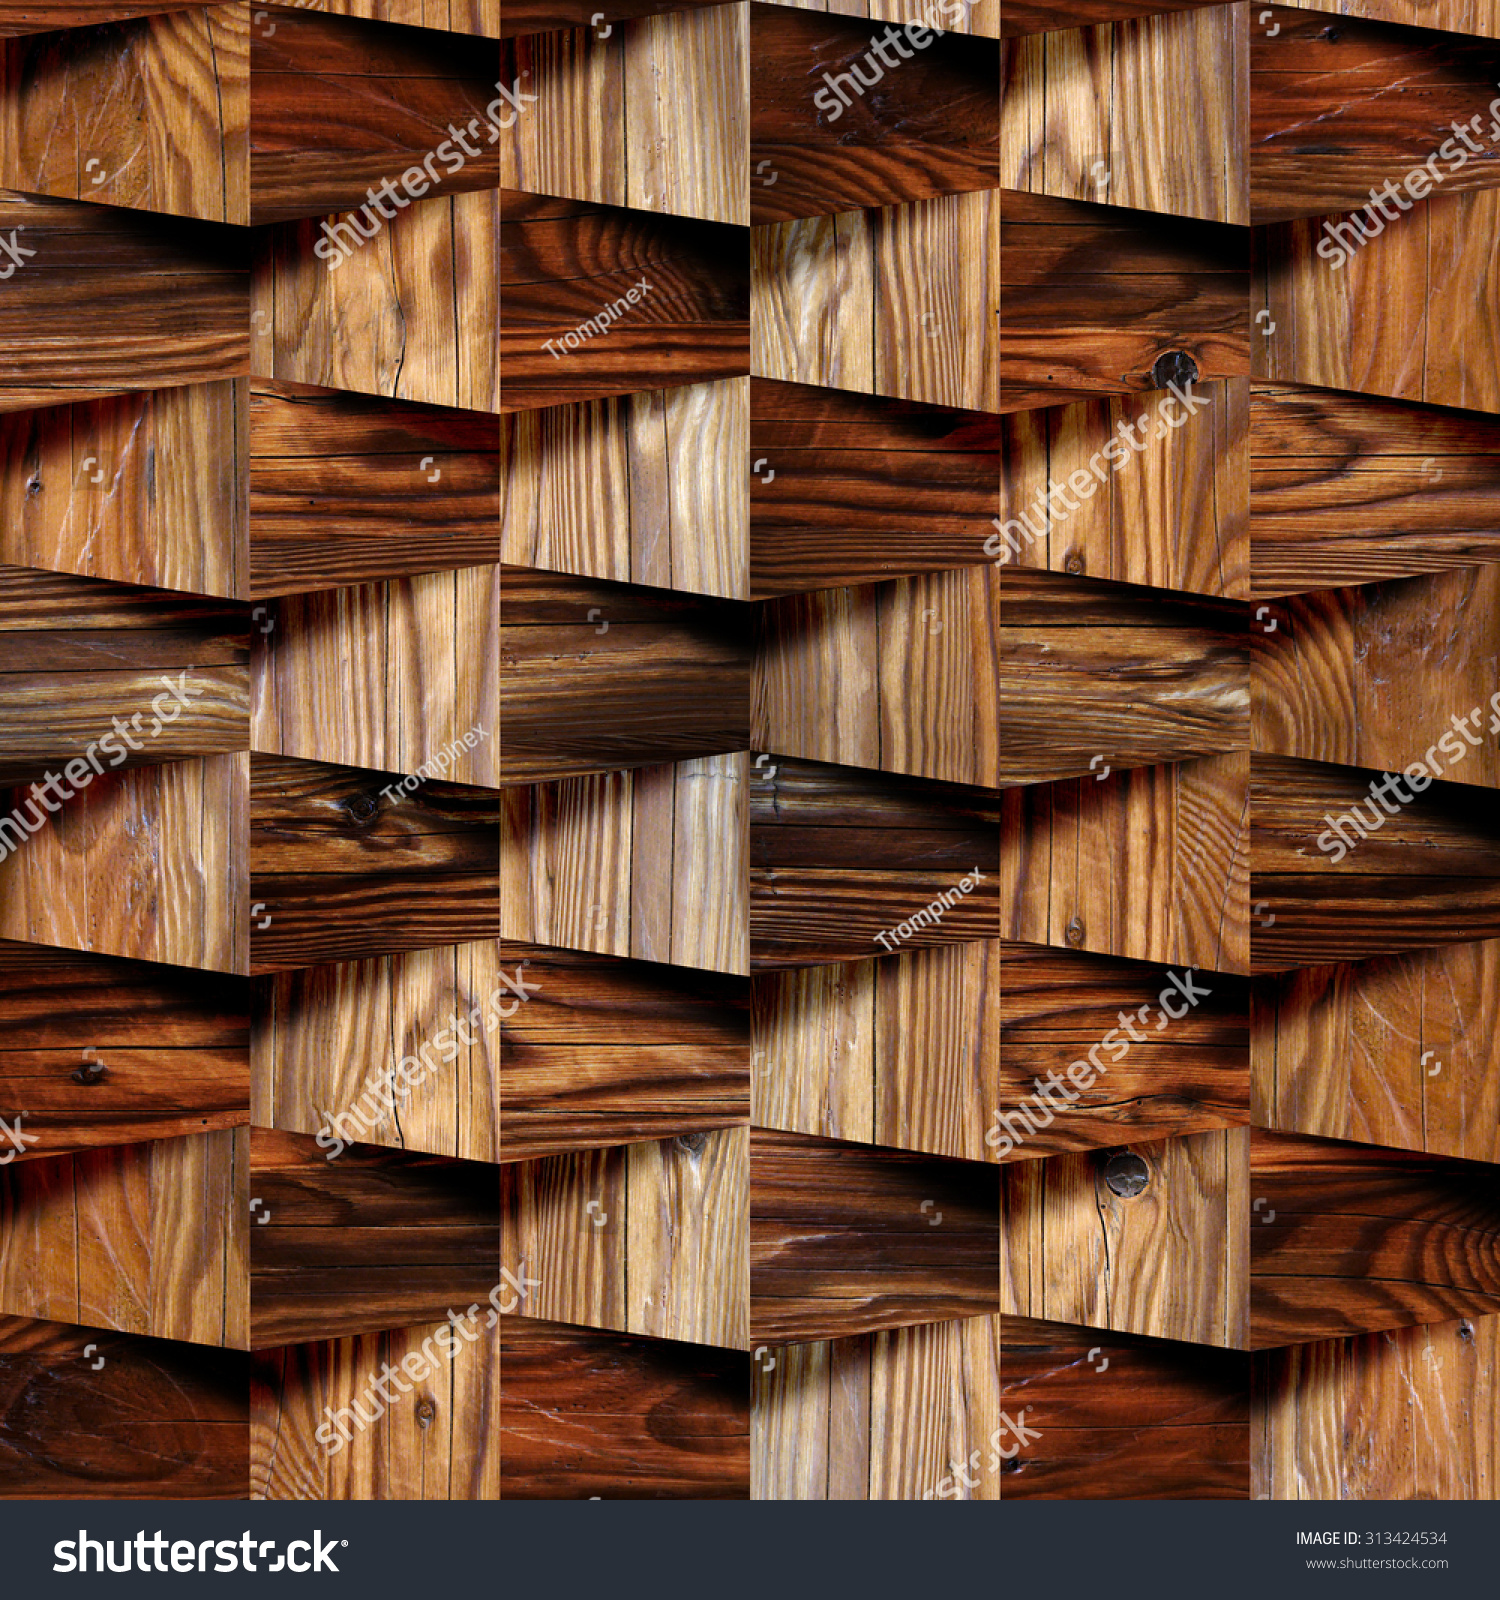 abstract wallpaper interior - photo #32